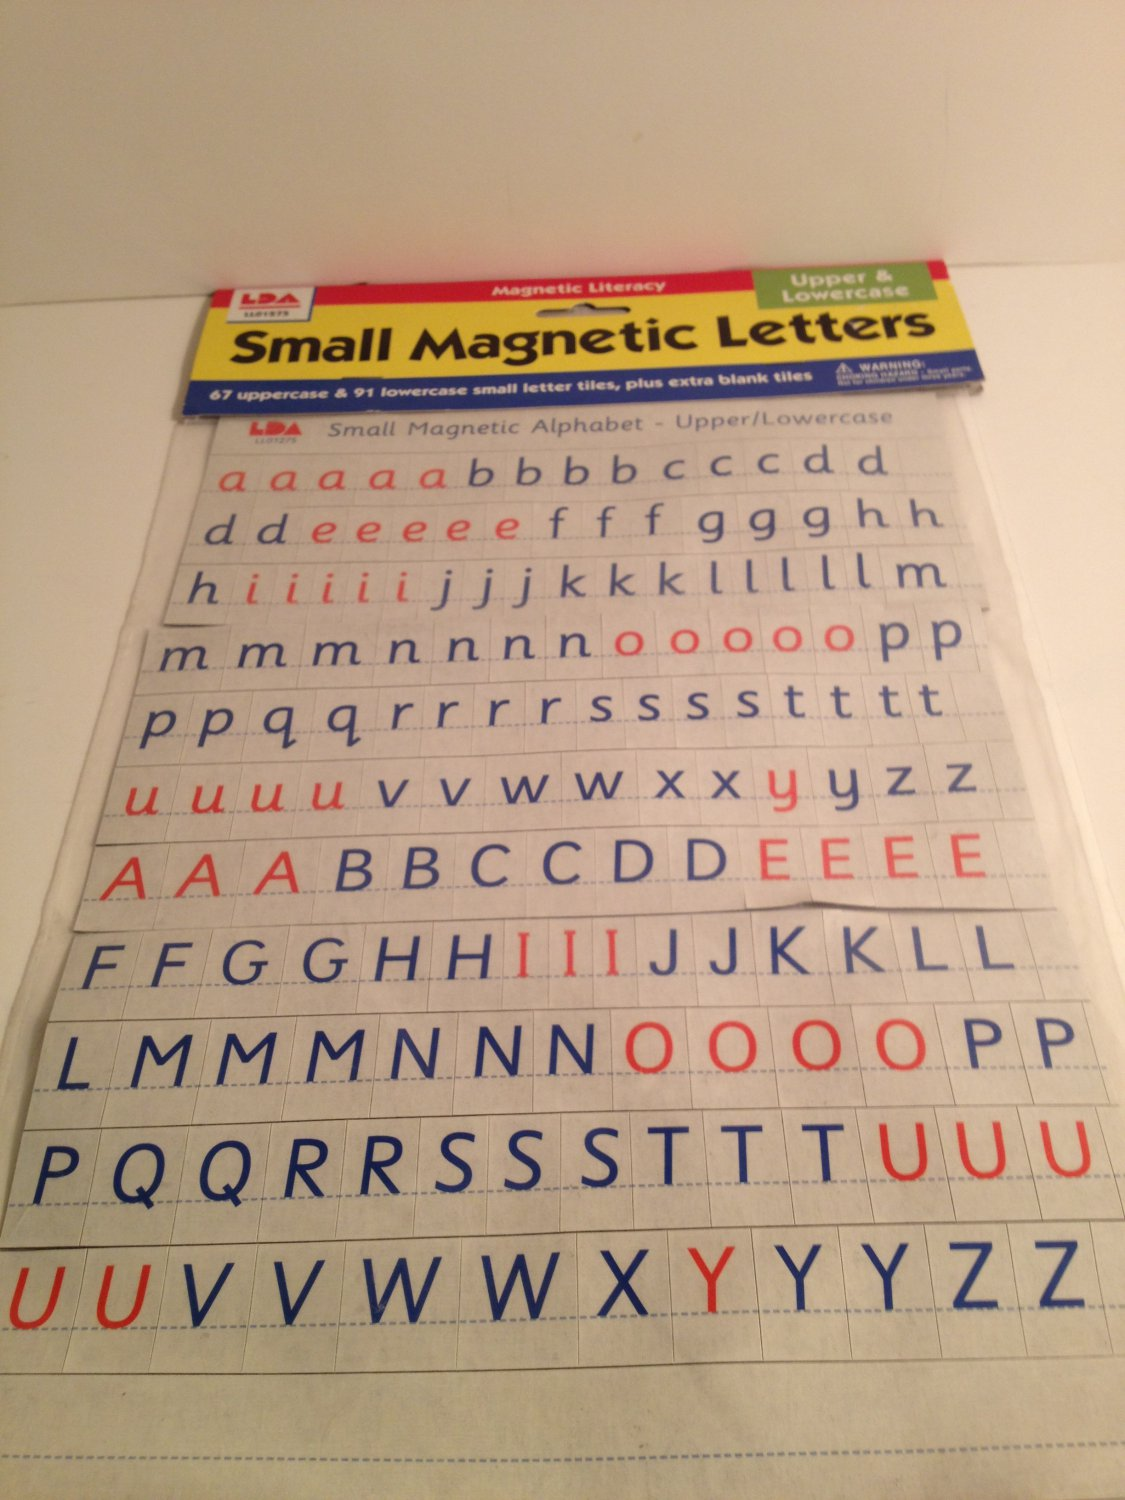 magnetic letters 158 small upper  u0026 lowercase plus extra